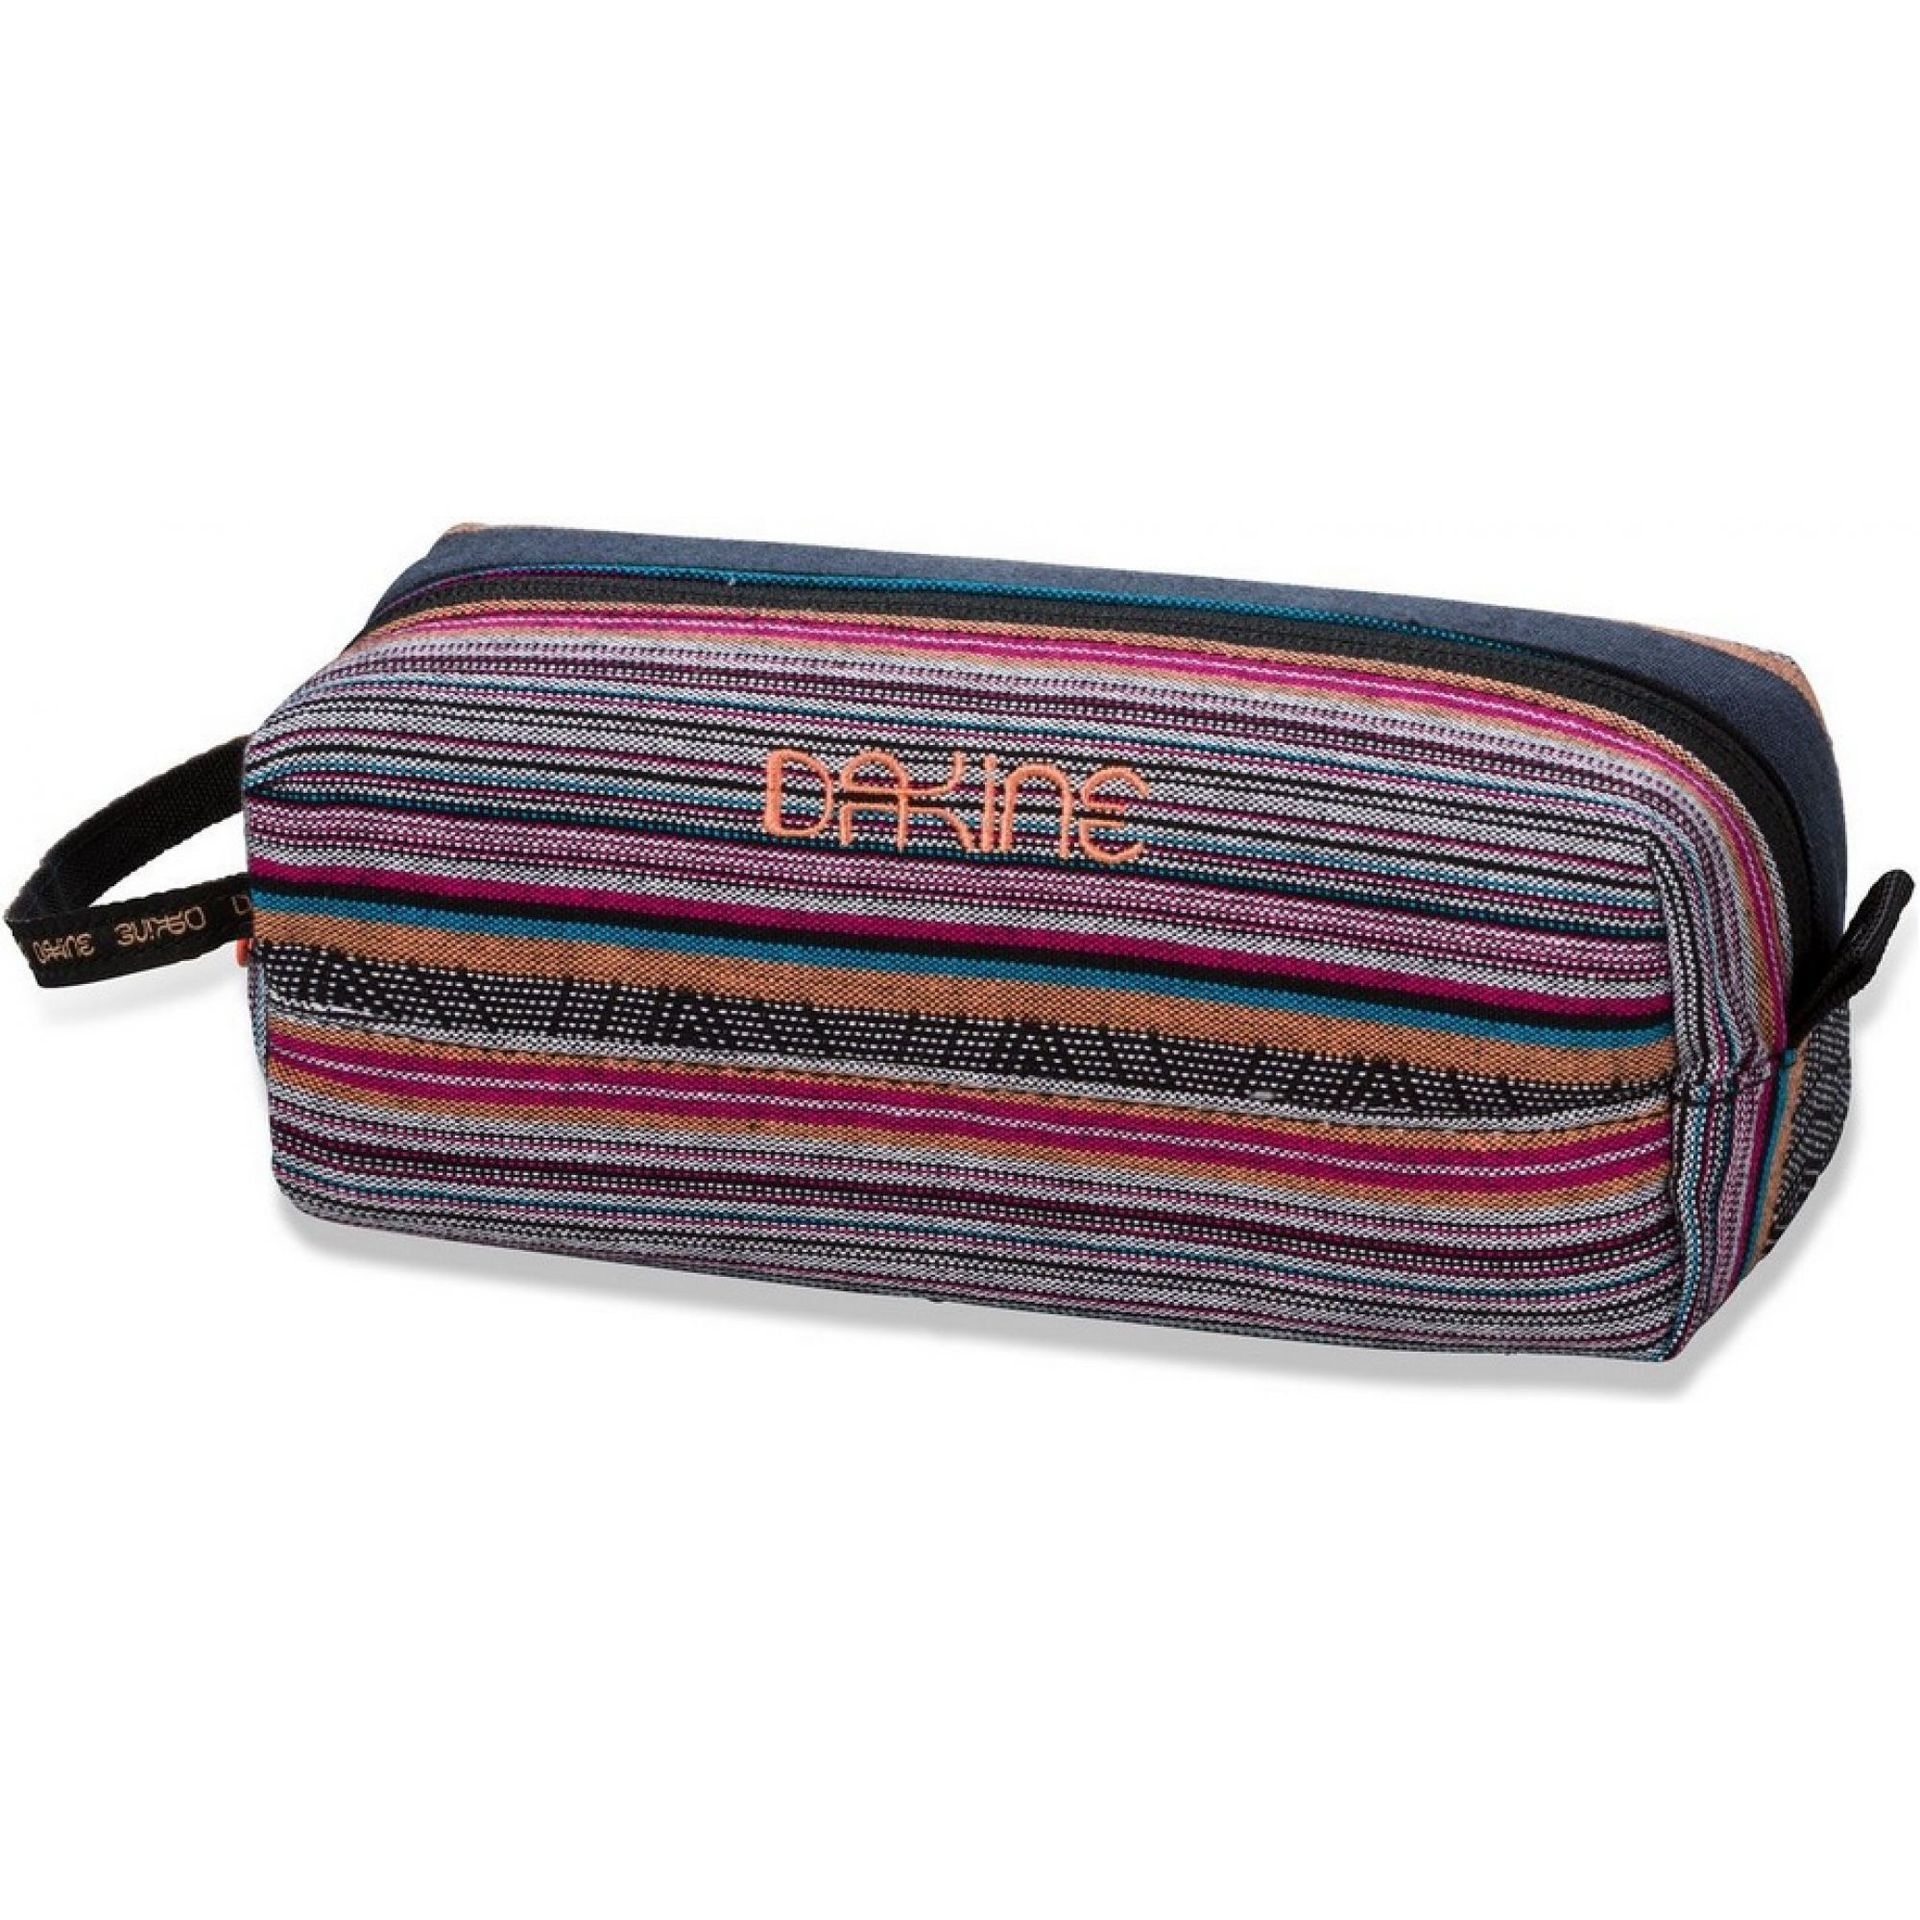 Piórnik Dakine Womens Accessory Case lux